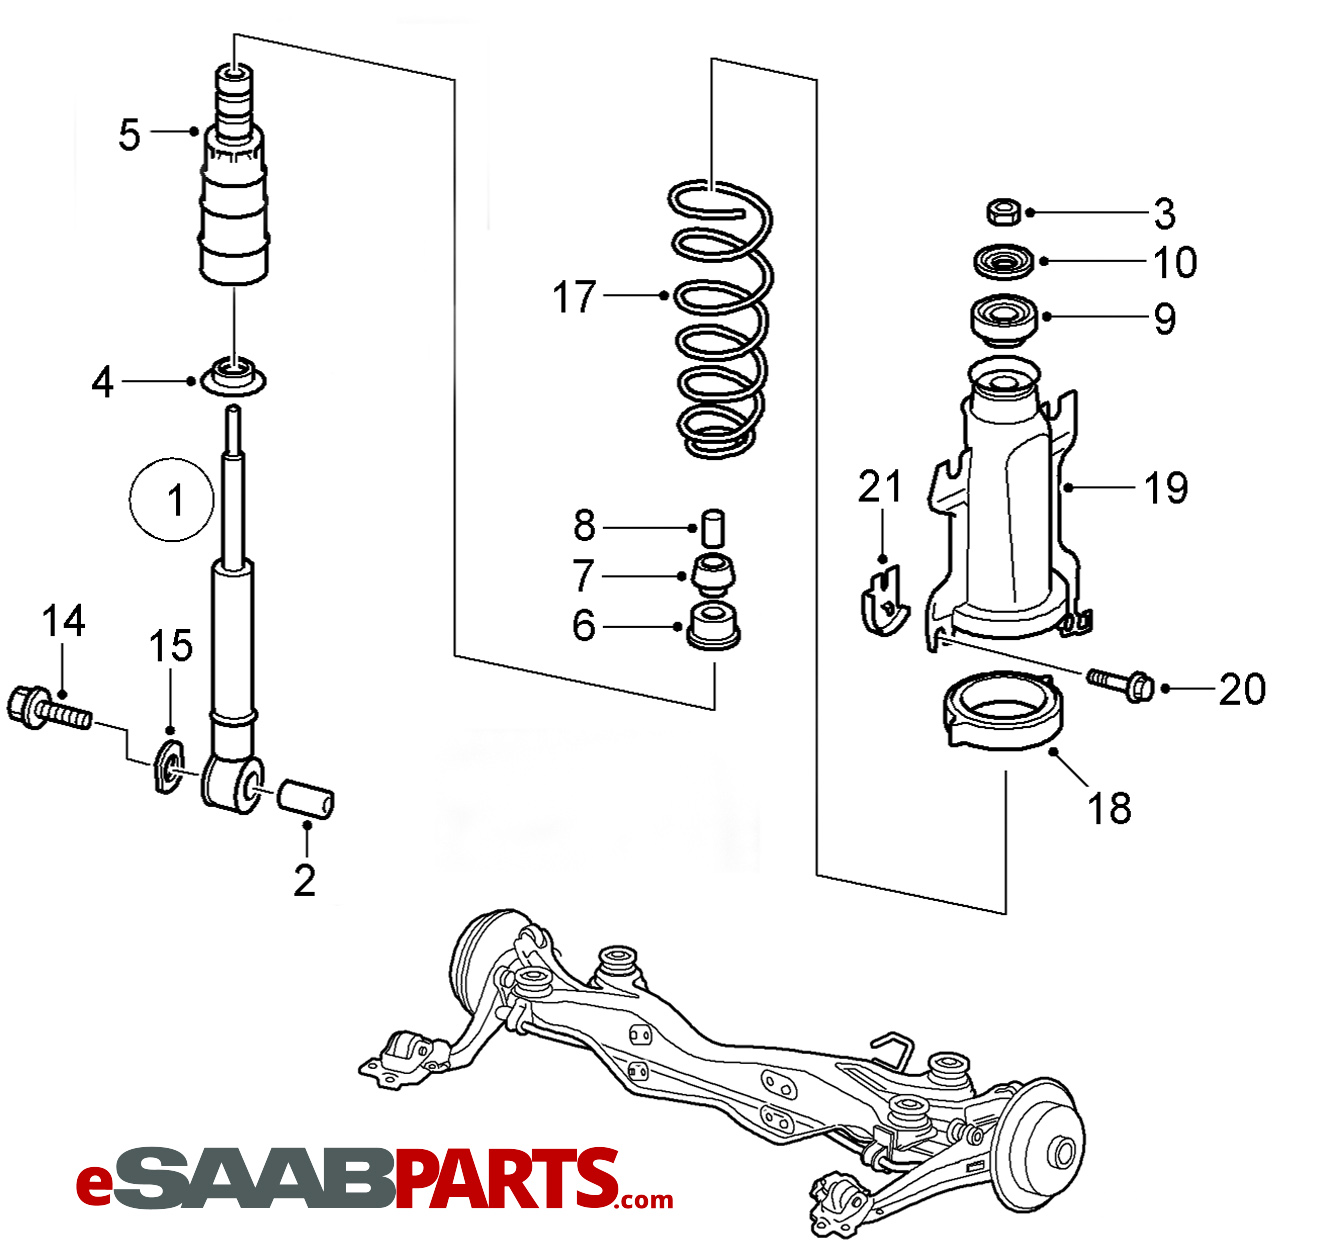 hight resolution of esaabparts com saab 9 5 9600 suspension wheels parts suspension rear rear springs 2006 2009